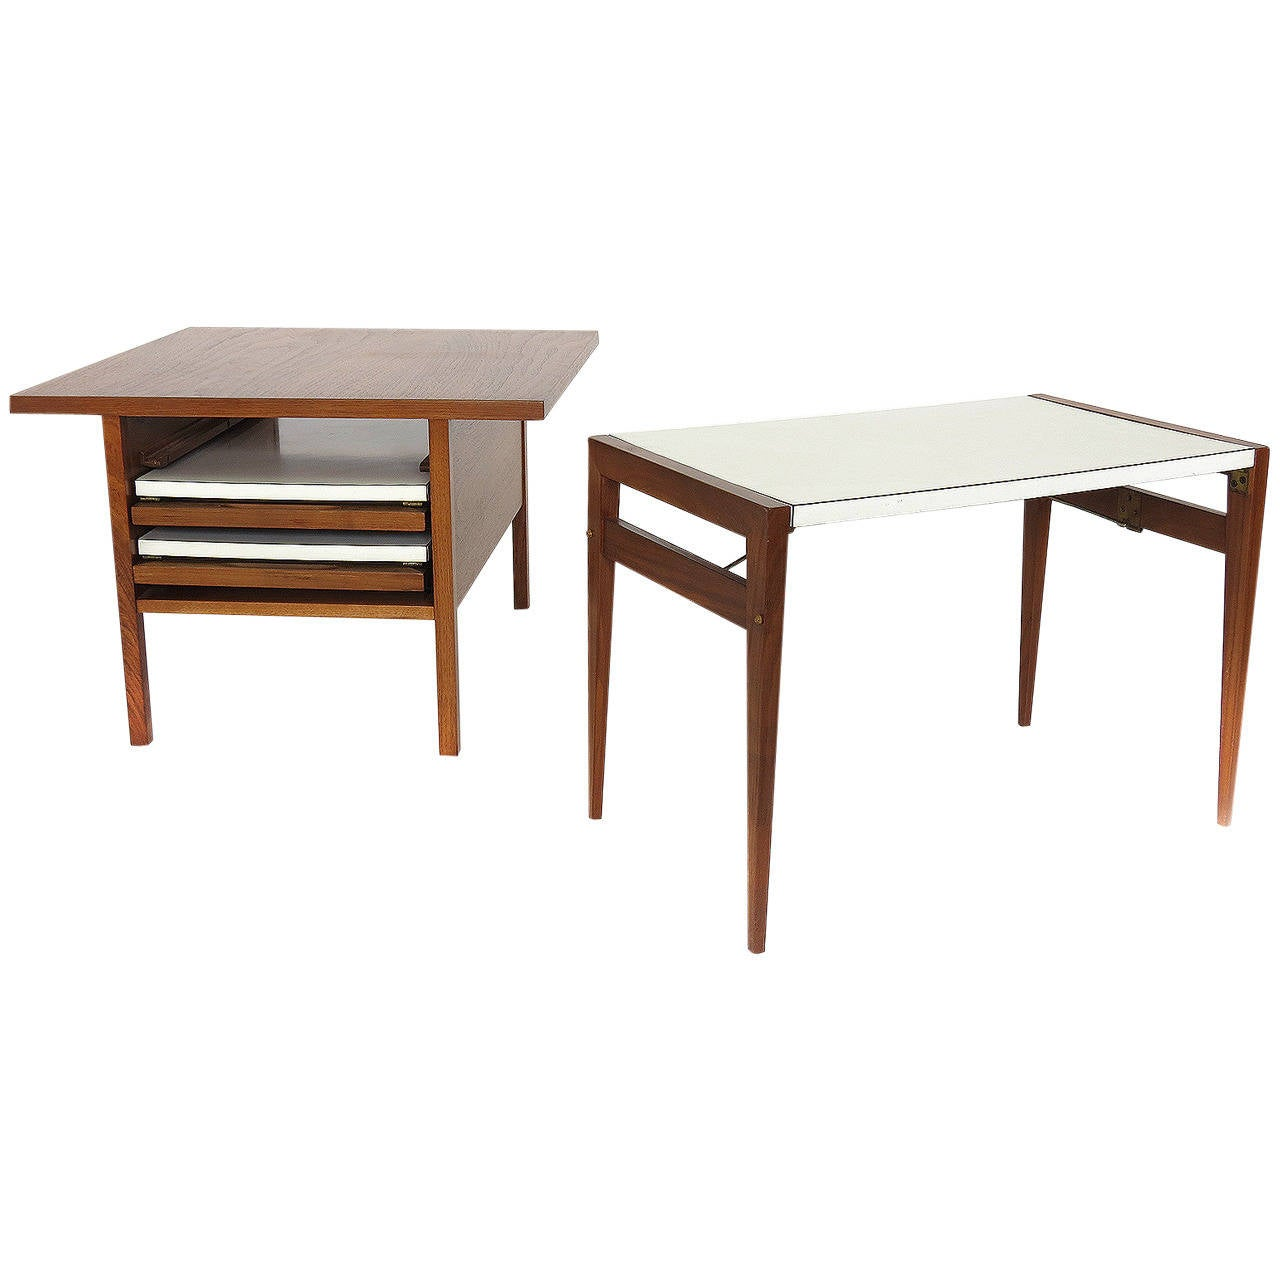 john keal coffee table with folding side tables at 1stdibs. Black Bedroom Furniture Sets. Home Design Ideas